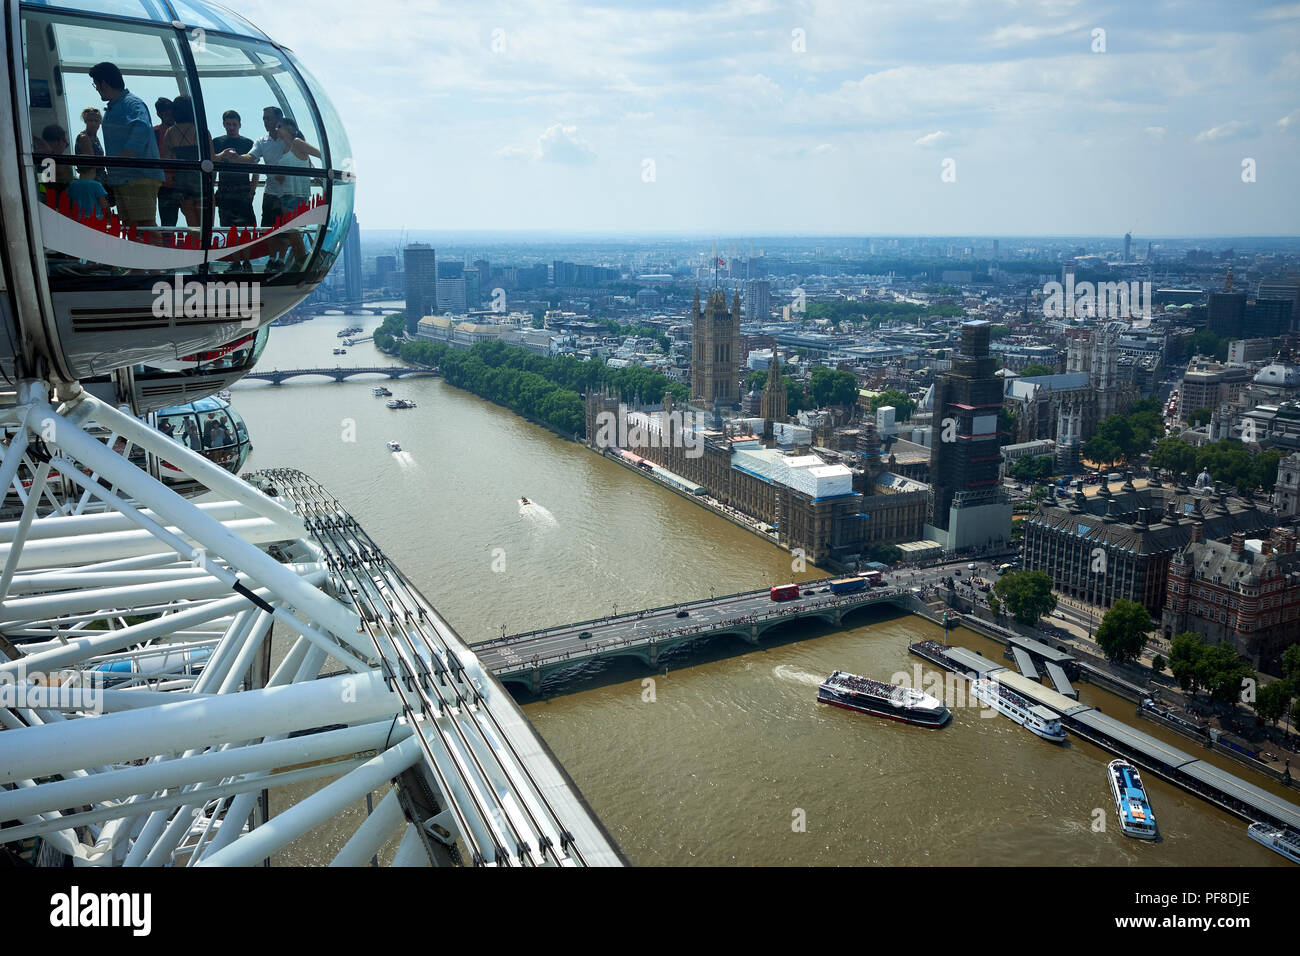 London / UK - July 26th 2018: The view of London looking across the Thames from the London Eye on the South Bank Stock Photo